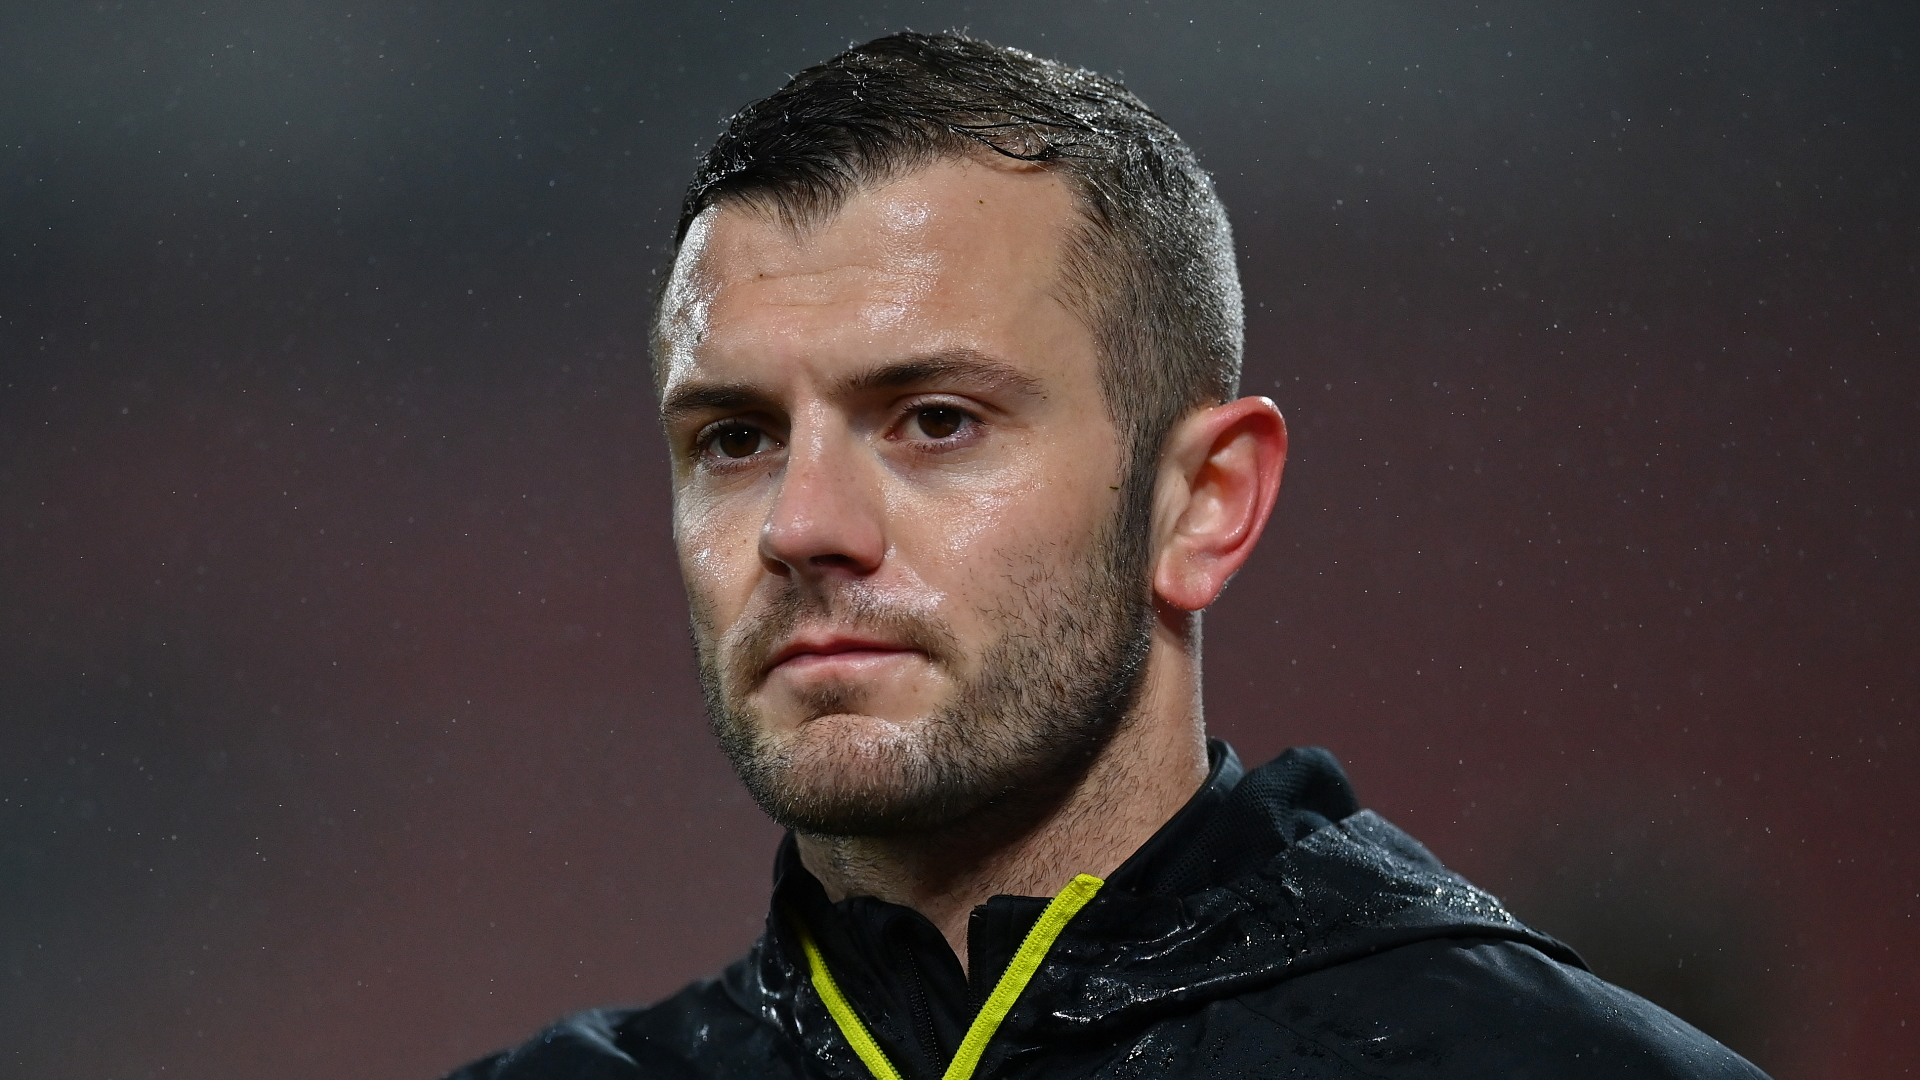 Arteta says Arsenal's 'doors are always open' for Wilshere as he continues search for new club